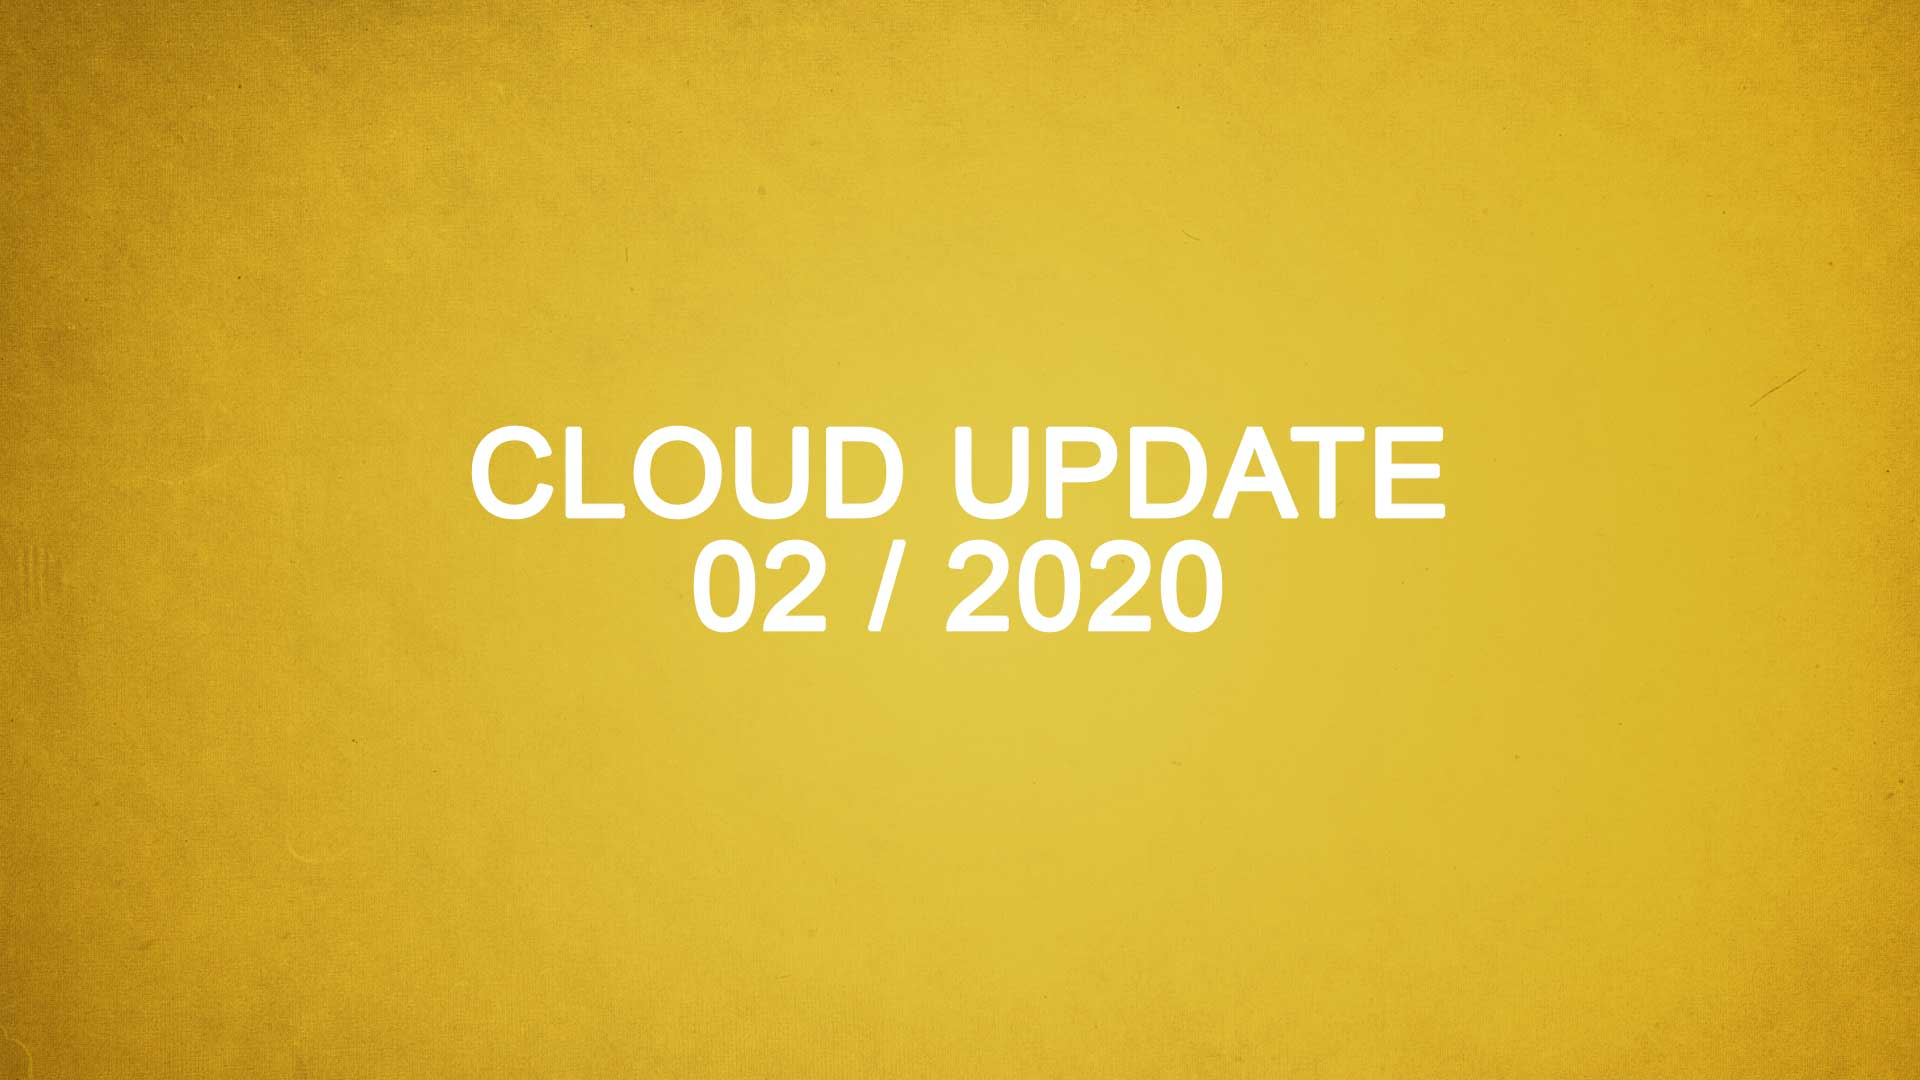 Titelbild Microsoft Cloud Update 02 / 2020